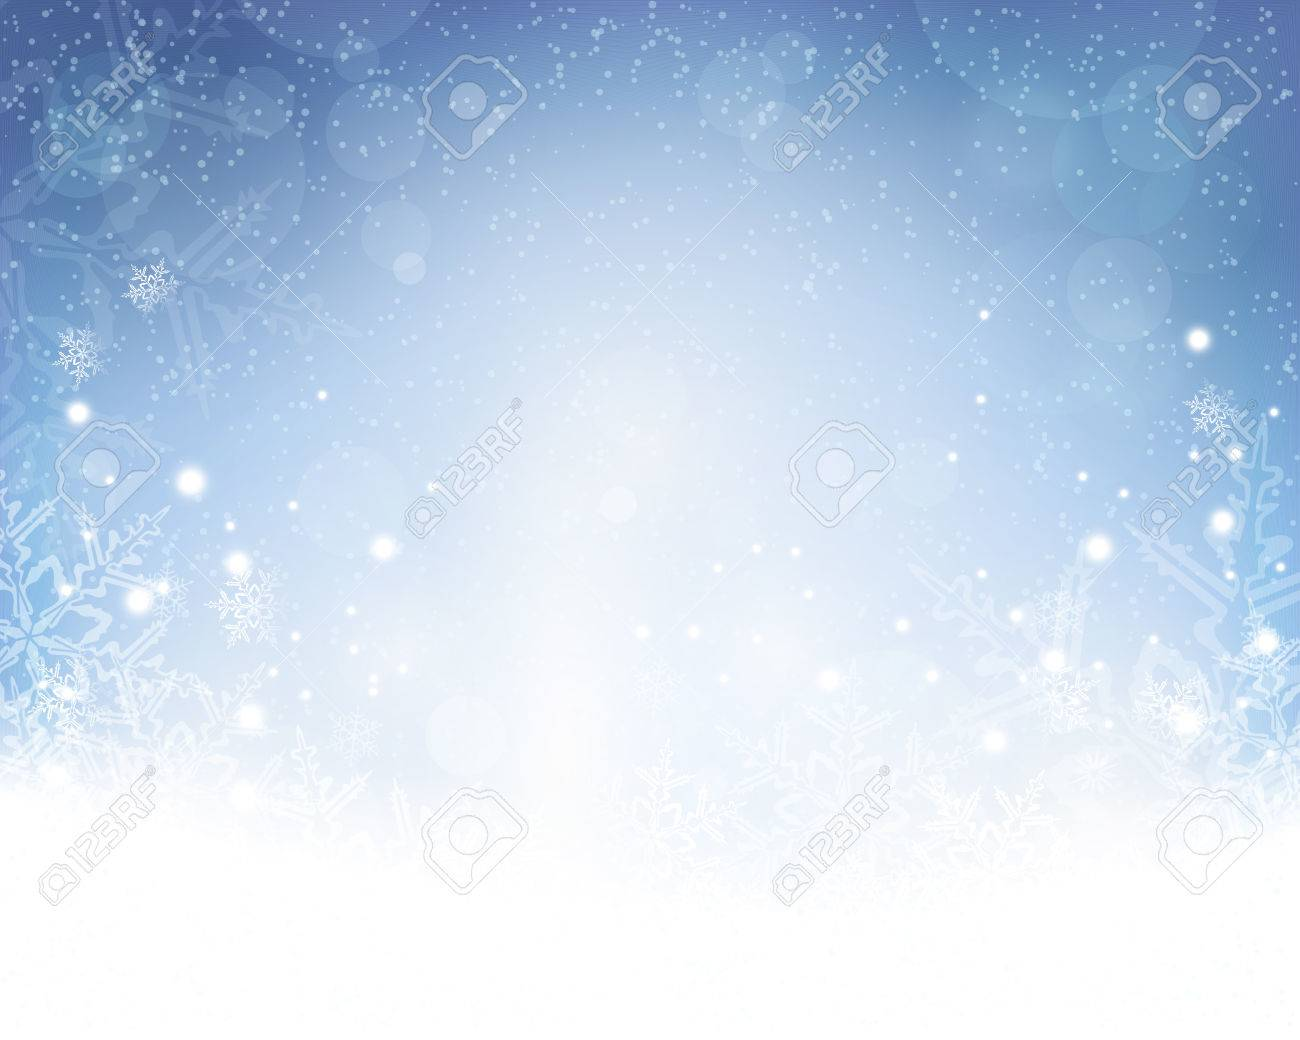 Festive Blue White Background With Stars, Snowflakes, Out Of ... for Light Effects White Background  54lyp